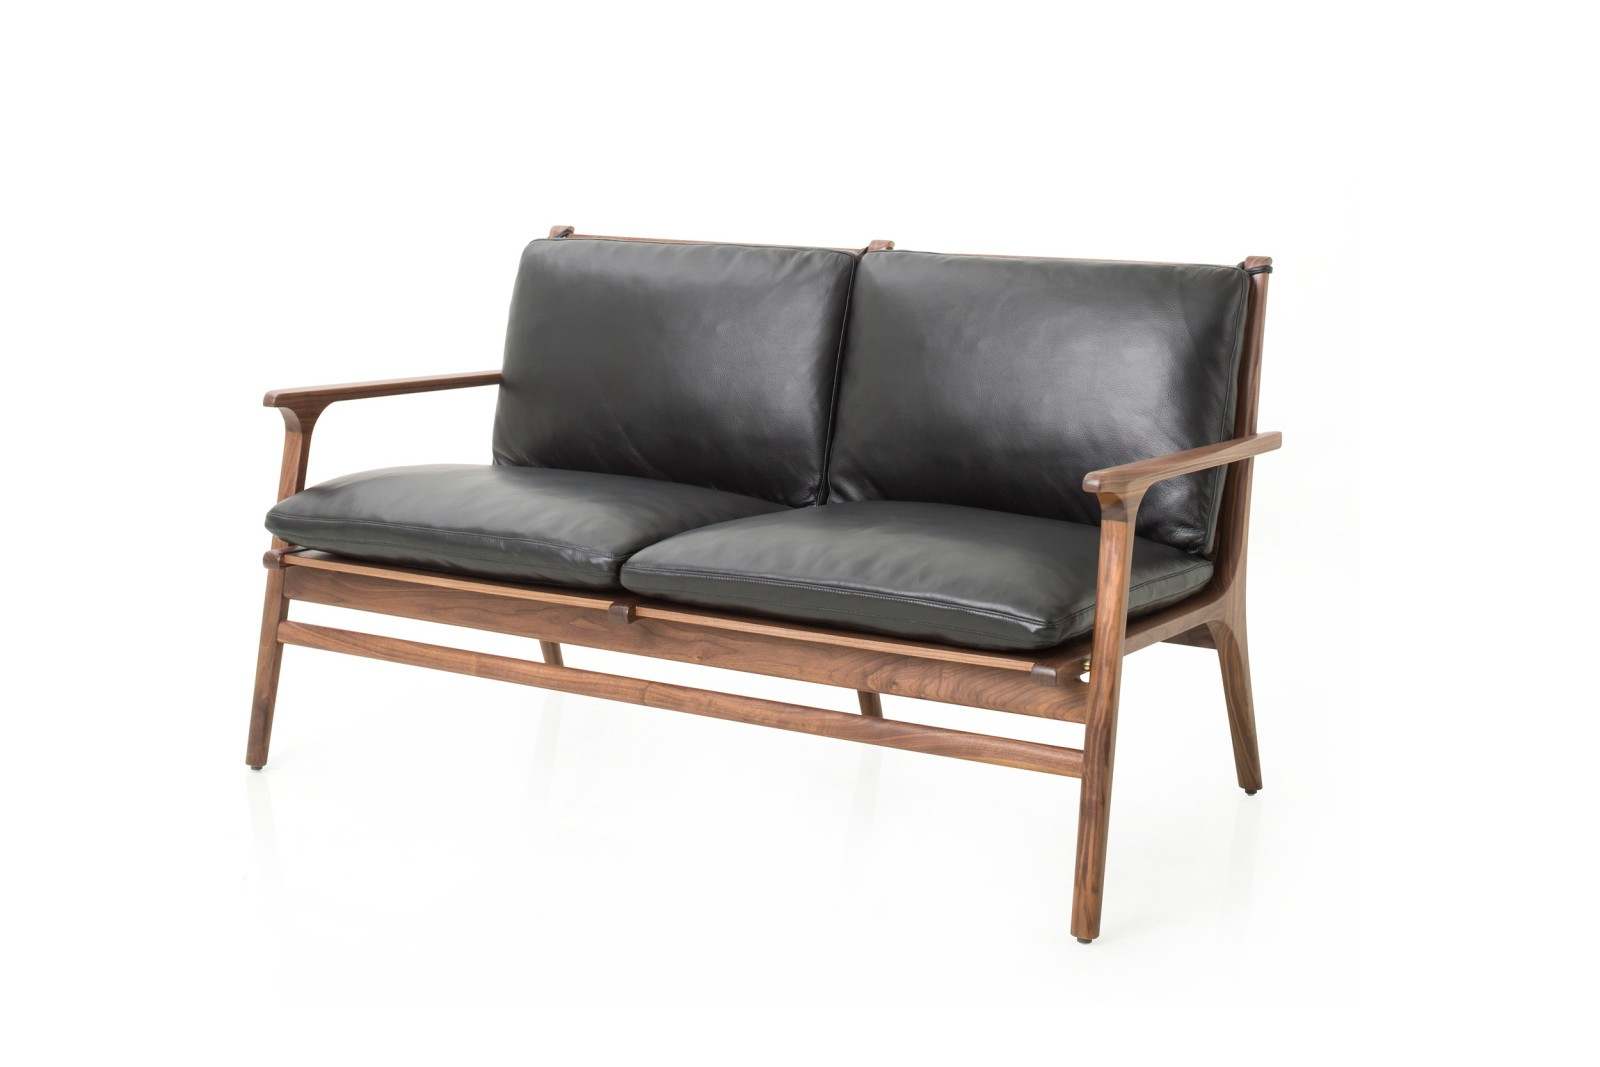 Re n Lounge Two Seater Sofa Wood Natural Walnut, Crystal Crystal Black - 9893